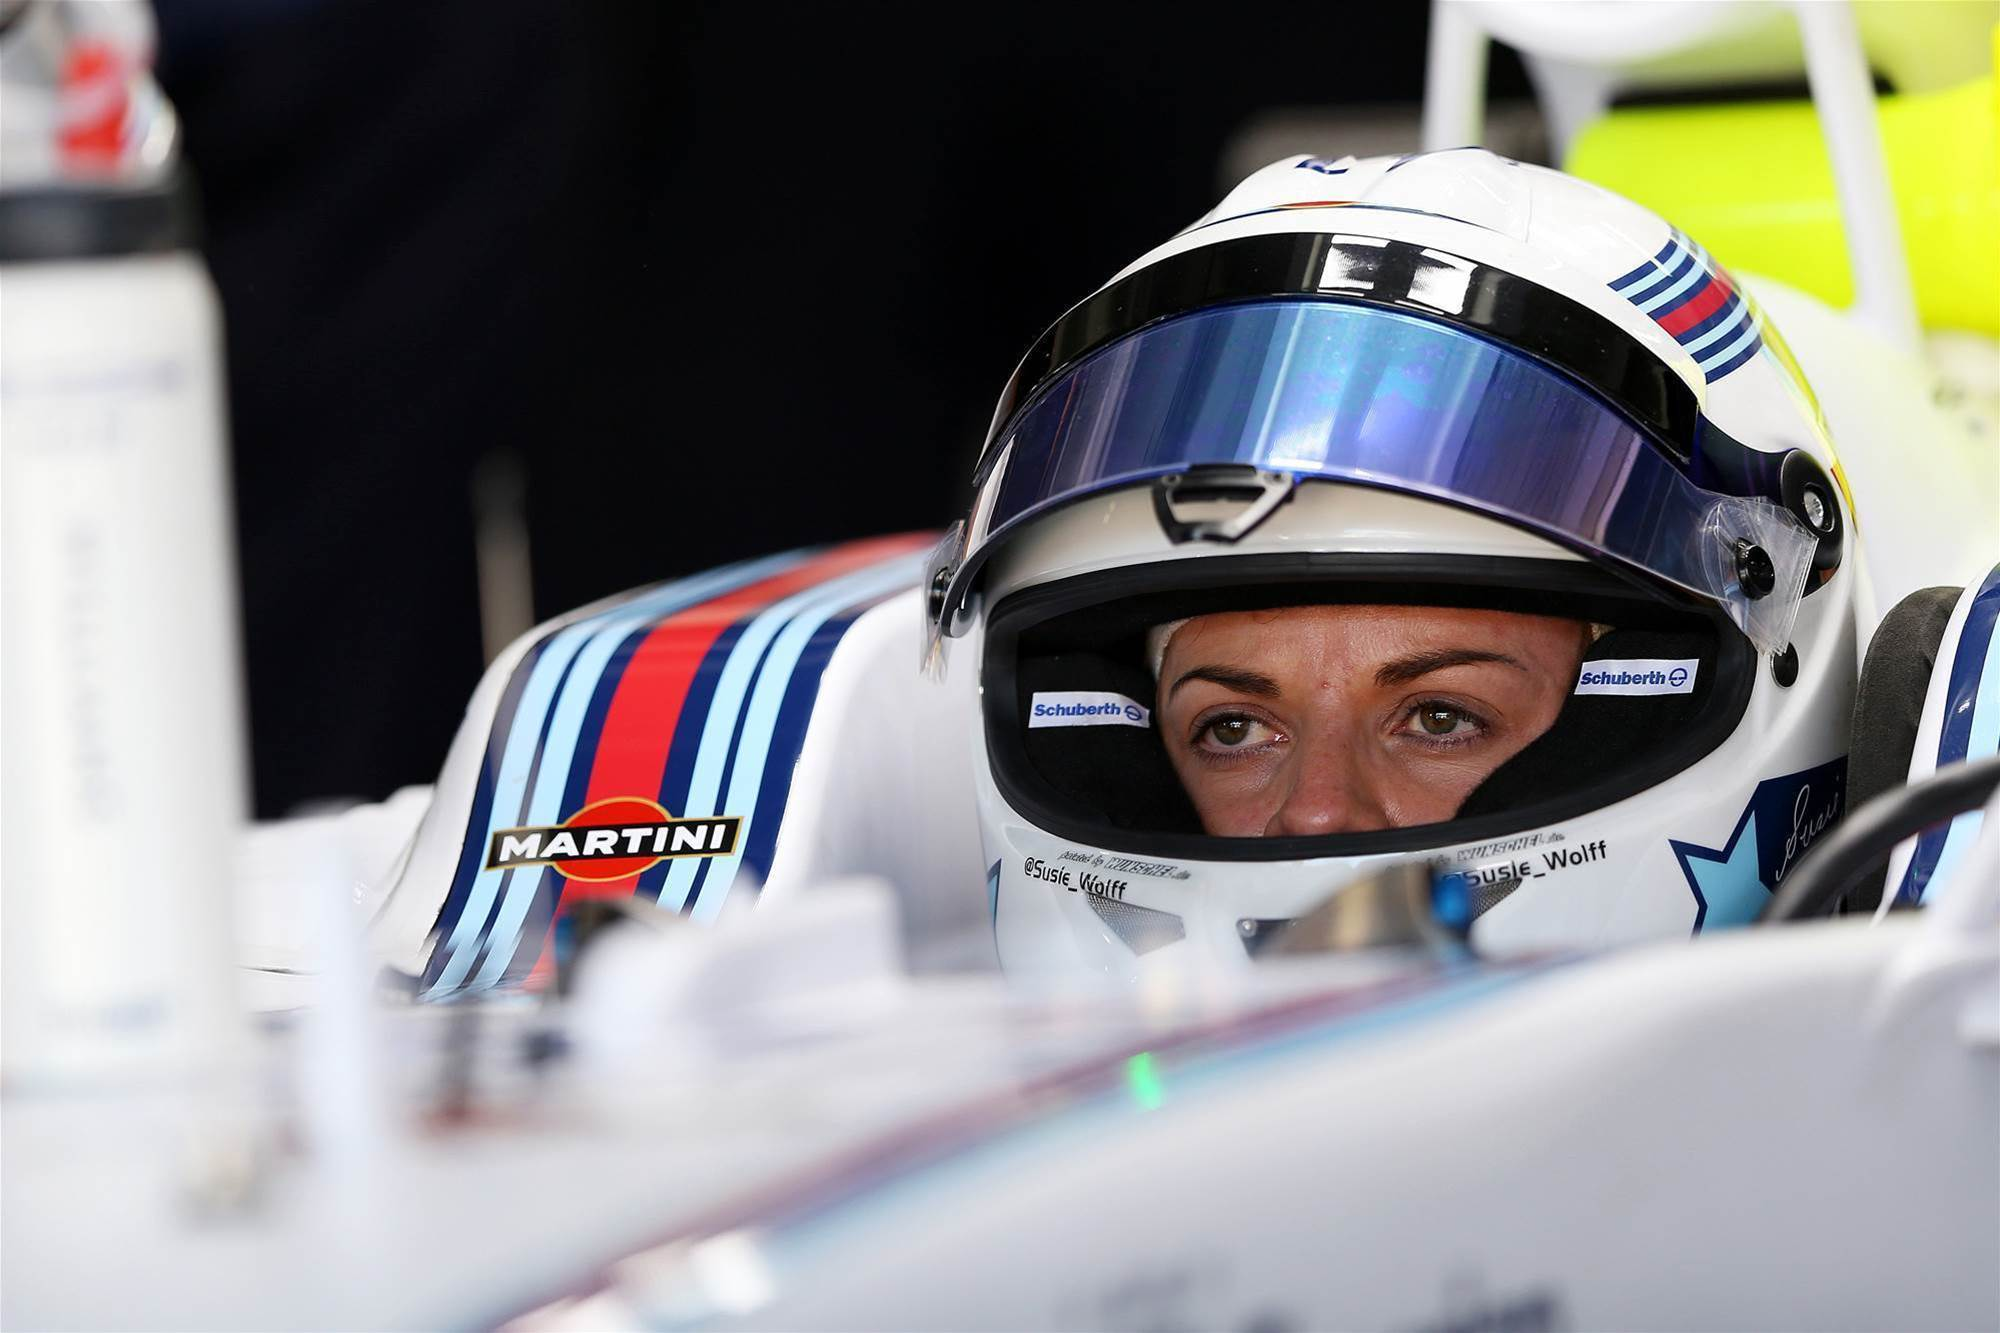 Susie Wolff to launch scheme to foster females in motorsport